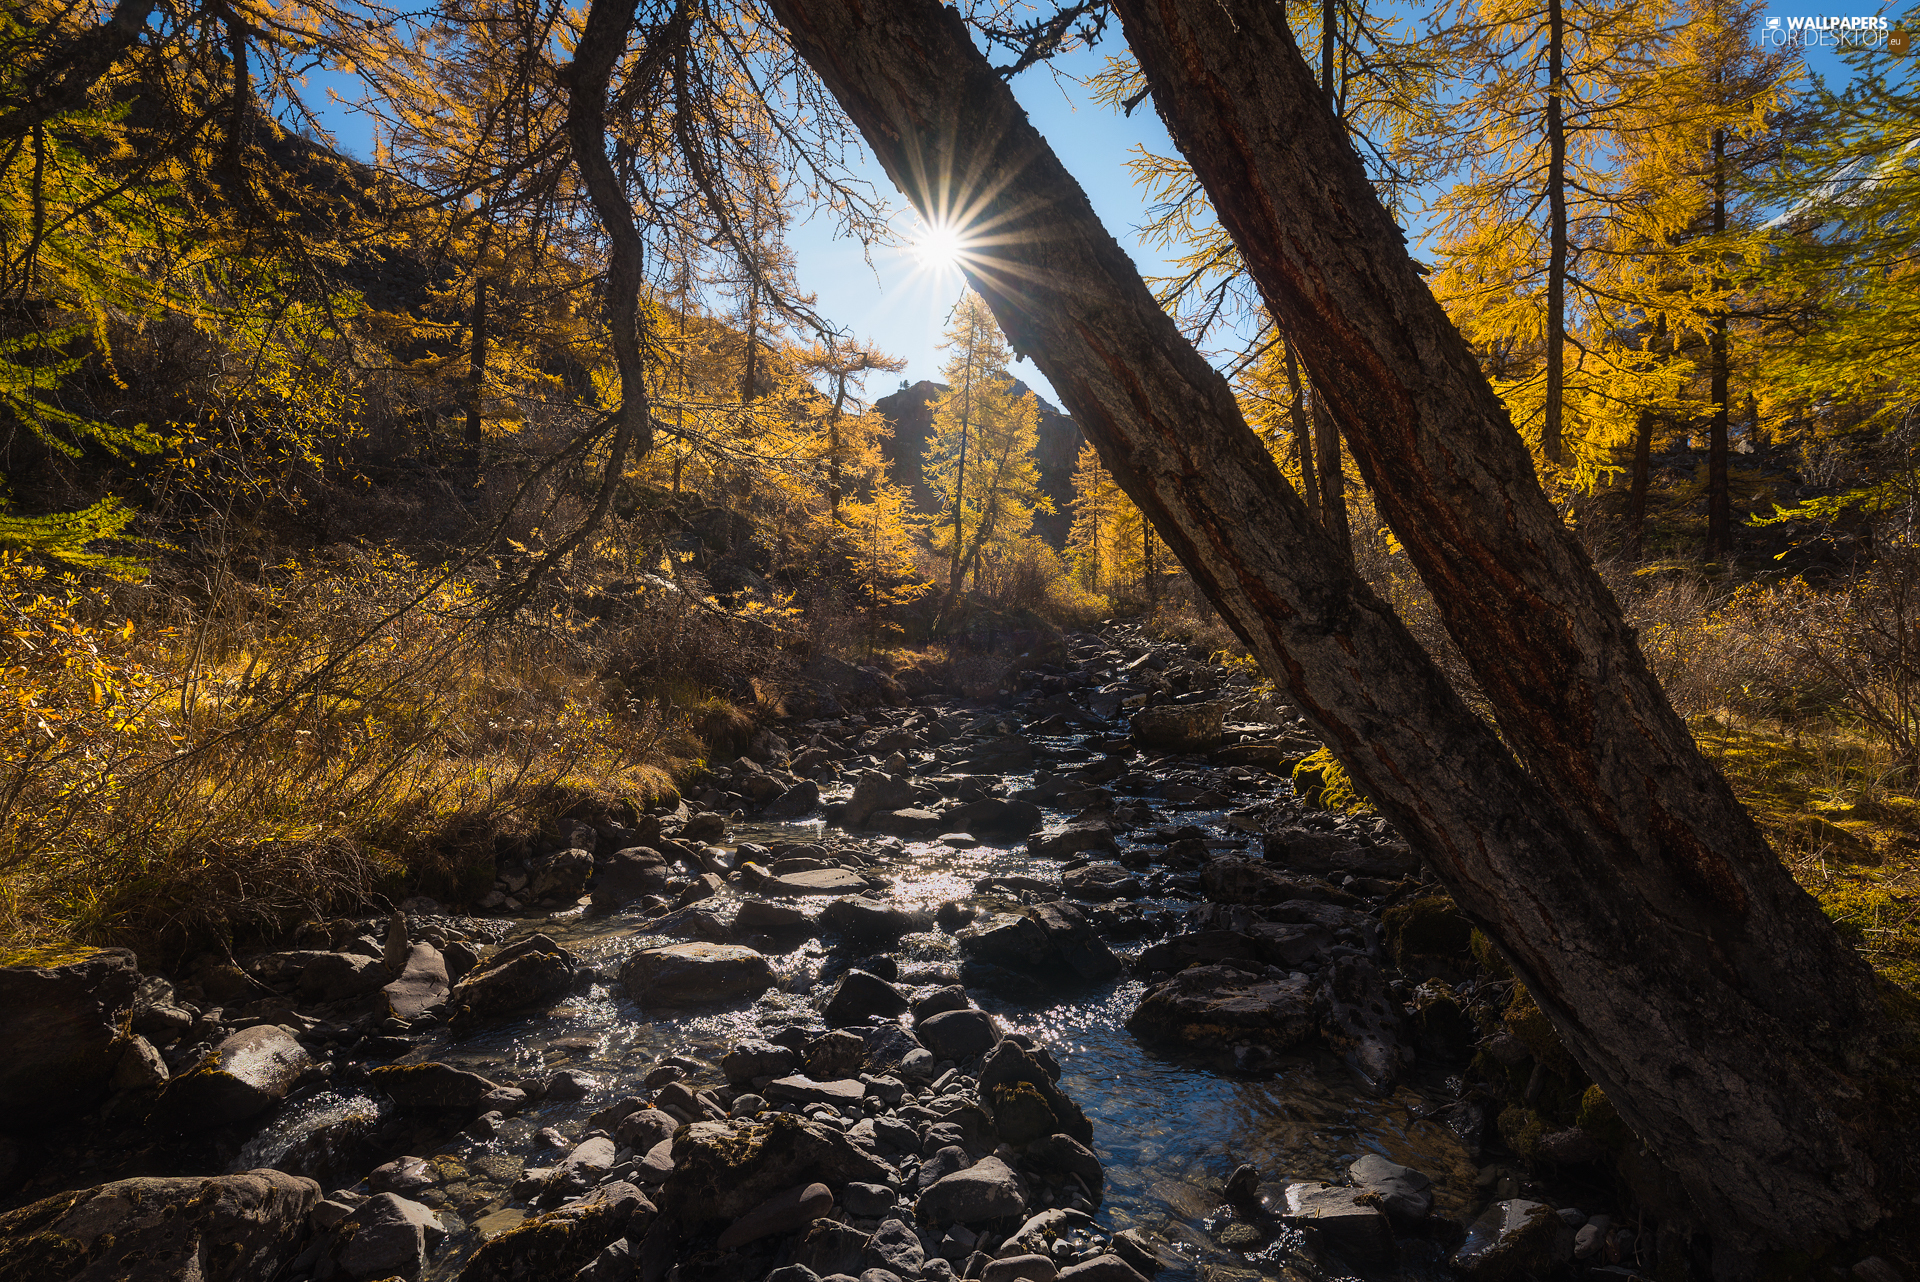 viewes, autumn, Stones, rays of the Sun, River, trees